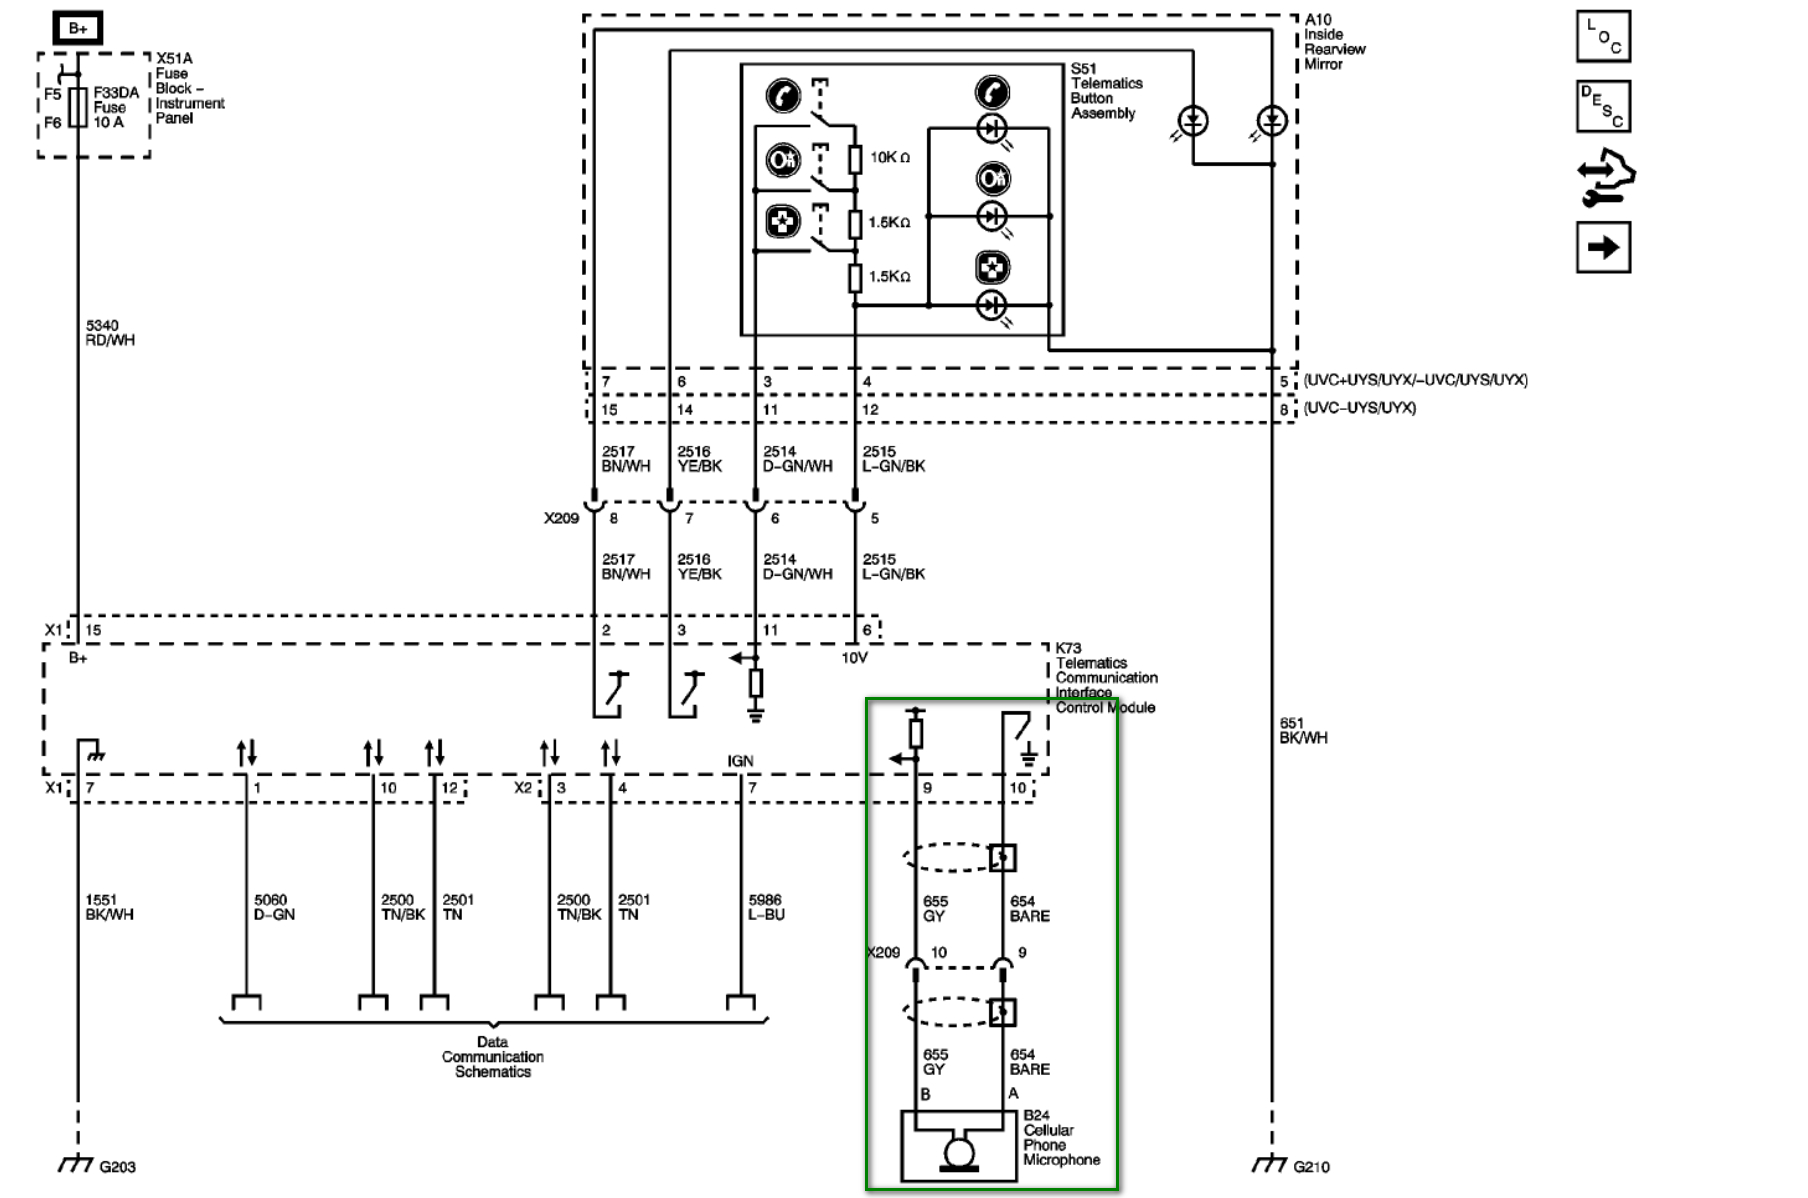 Diagram 2001 Gmc Radio Wiring Diagram Full Version Hd Quality Wiring Diagram Diagramjoyep Mikaousui It